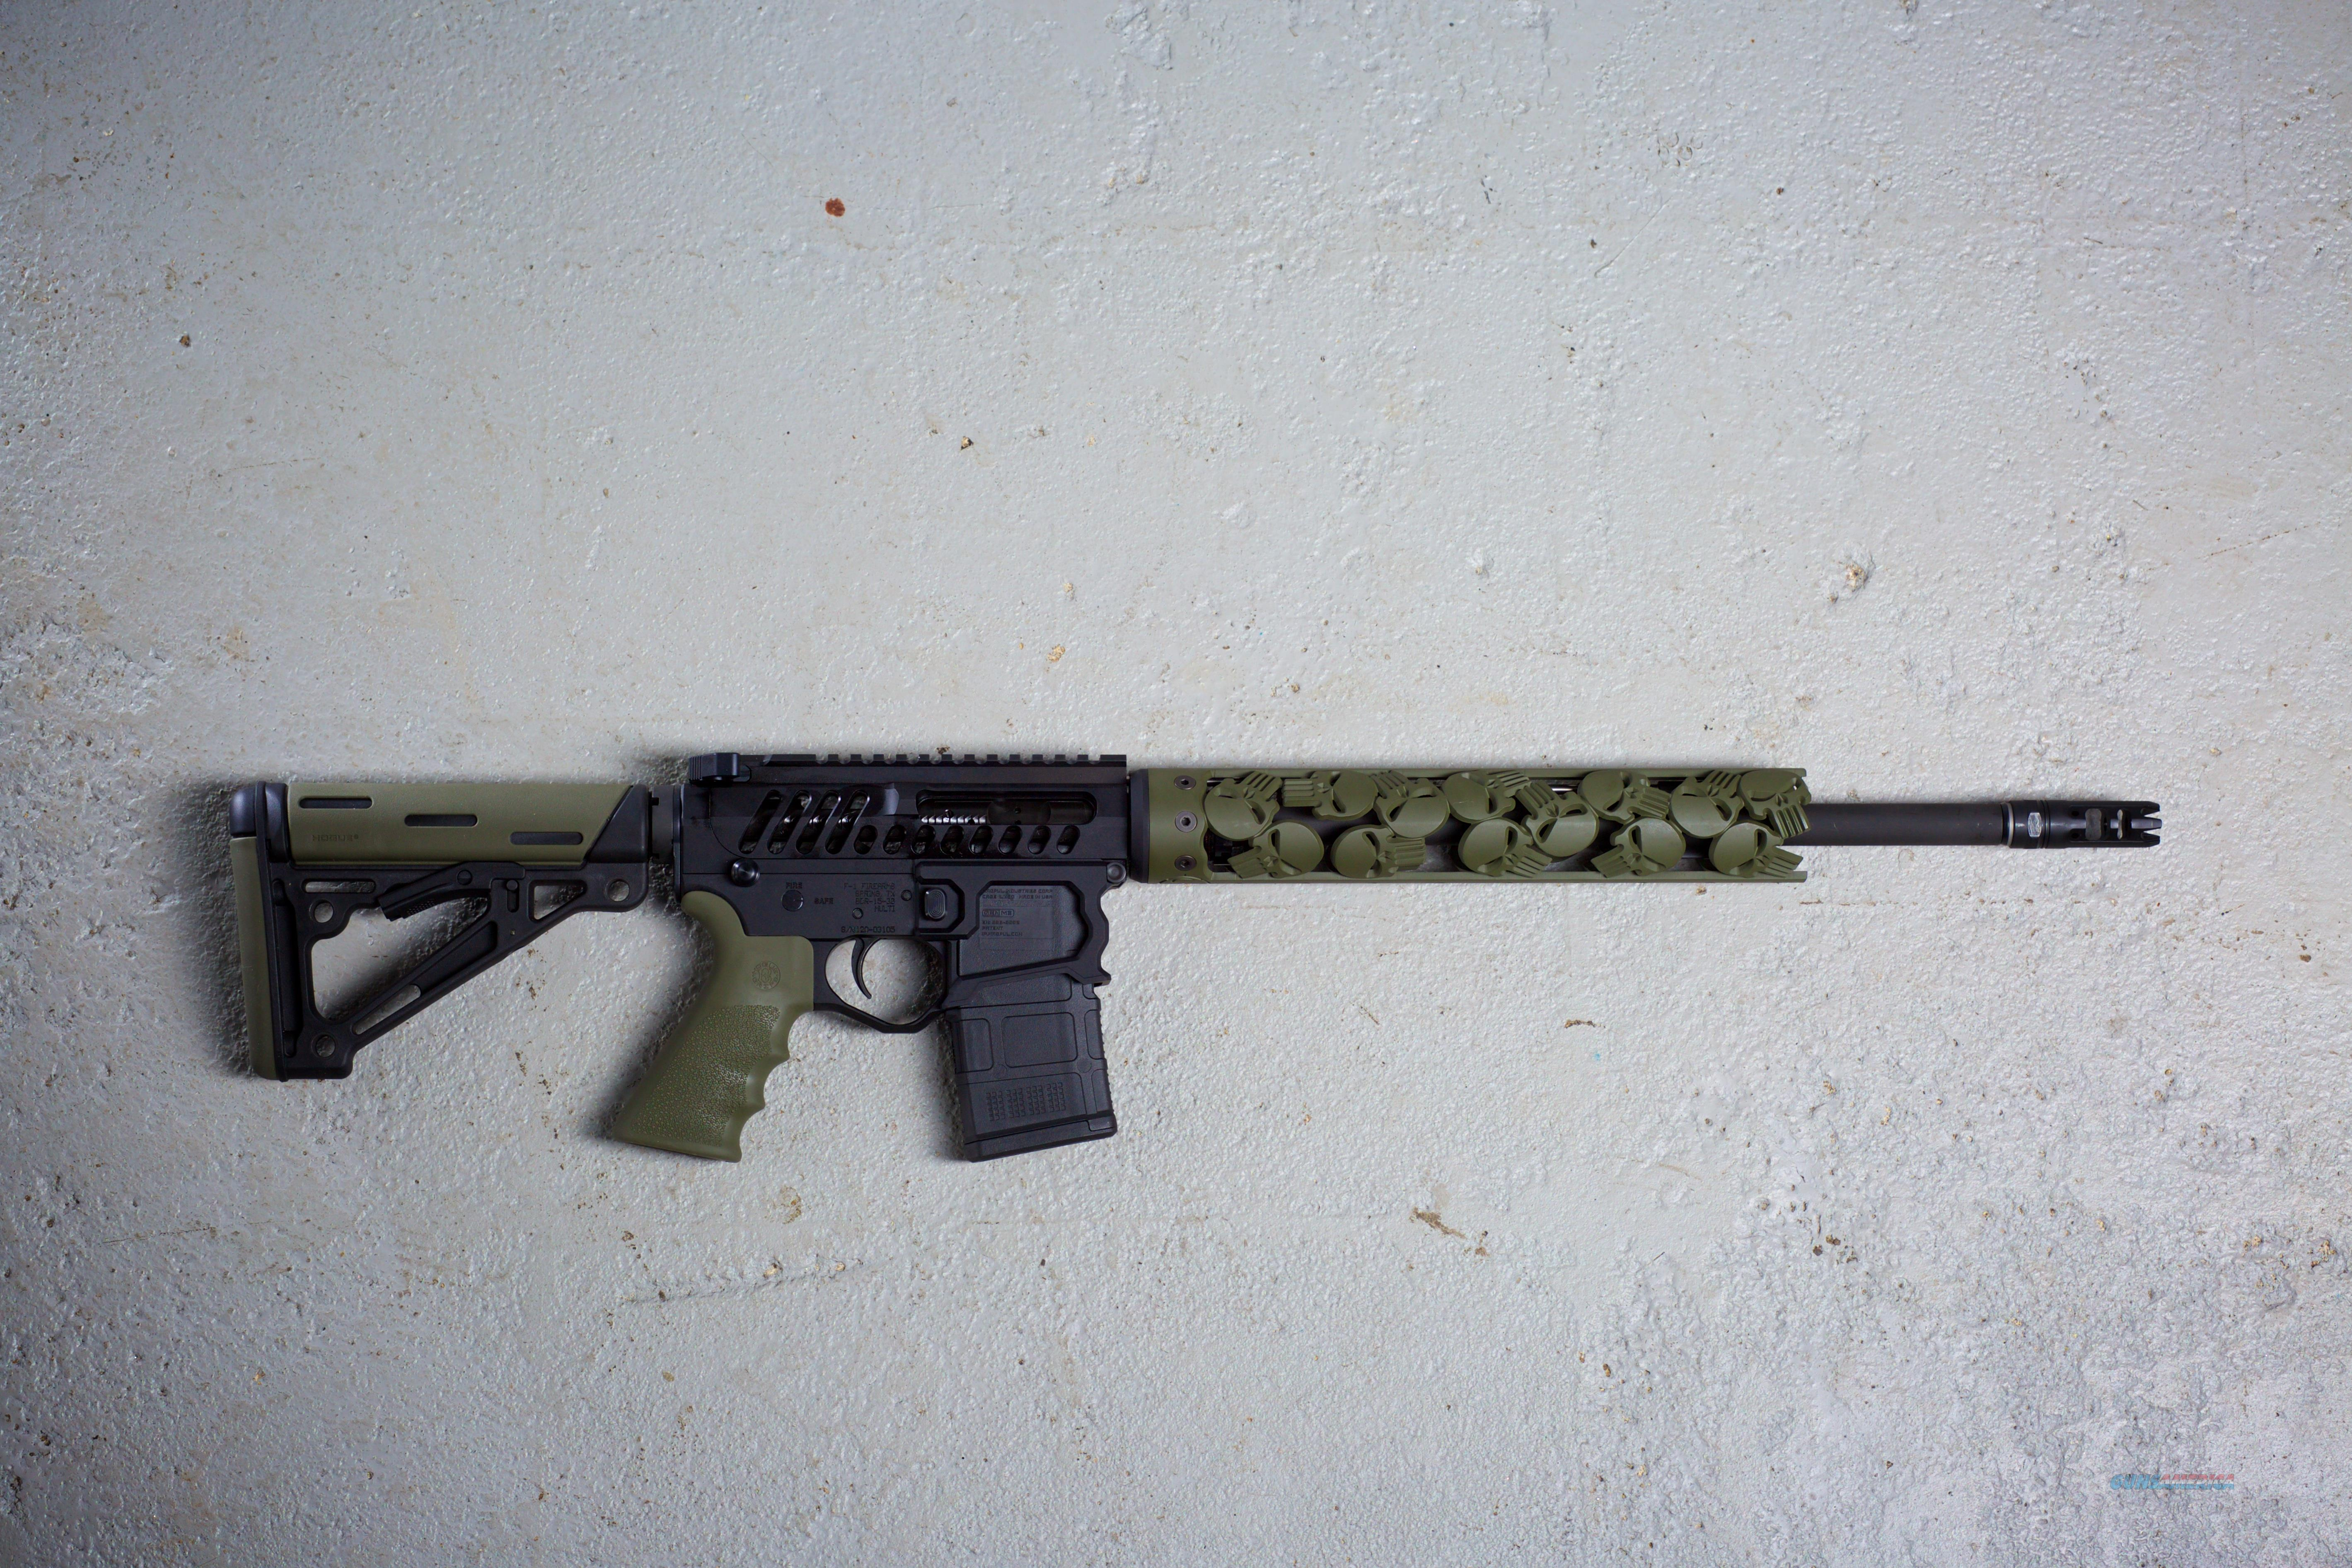 F-1 Firearms Rollin' Punisher AR-15 - Punisher Handguard - Skeletonized  Guns > Rifles > AR-15 Rifles - Small Manufacturers > Complete Rifle